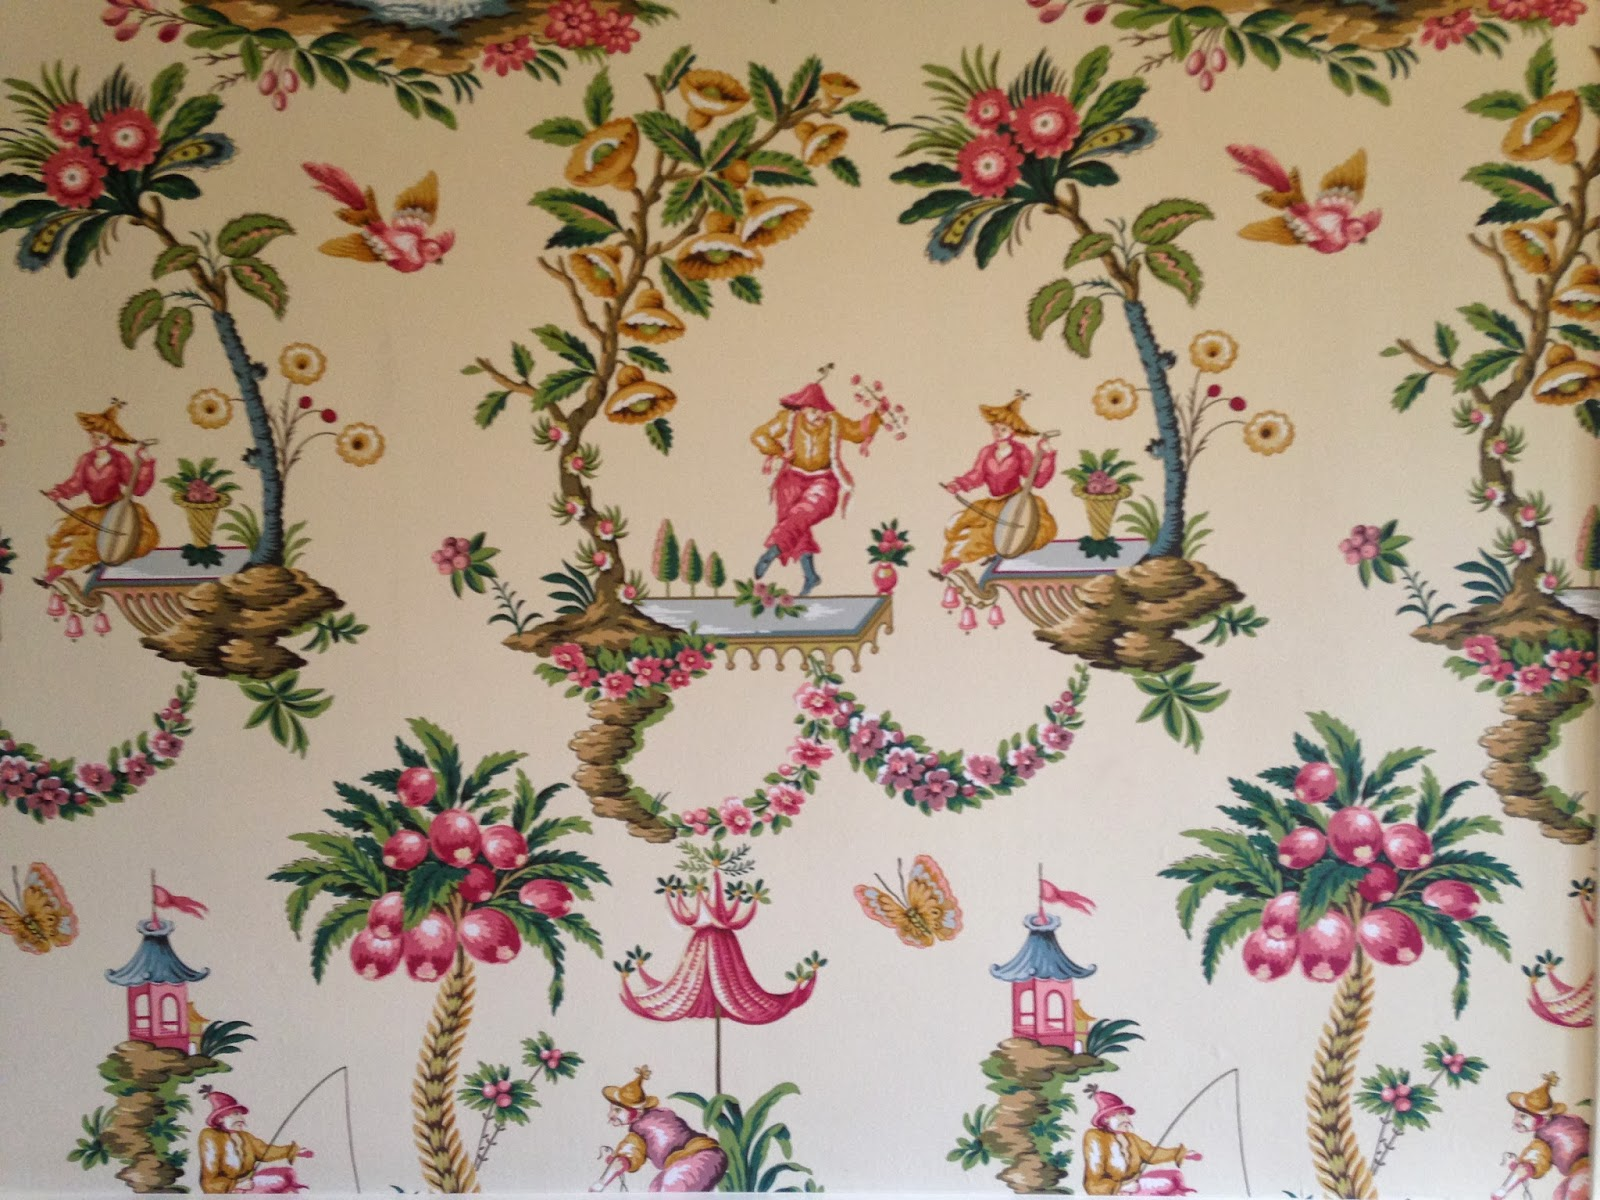 Chinoiserie Chic: Chinoiserie Then and Now and Mystery ... | 1600 x 1200 jpeg 352kB